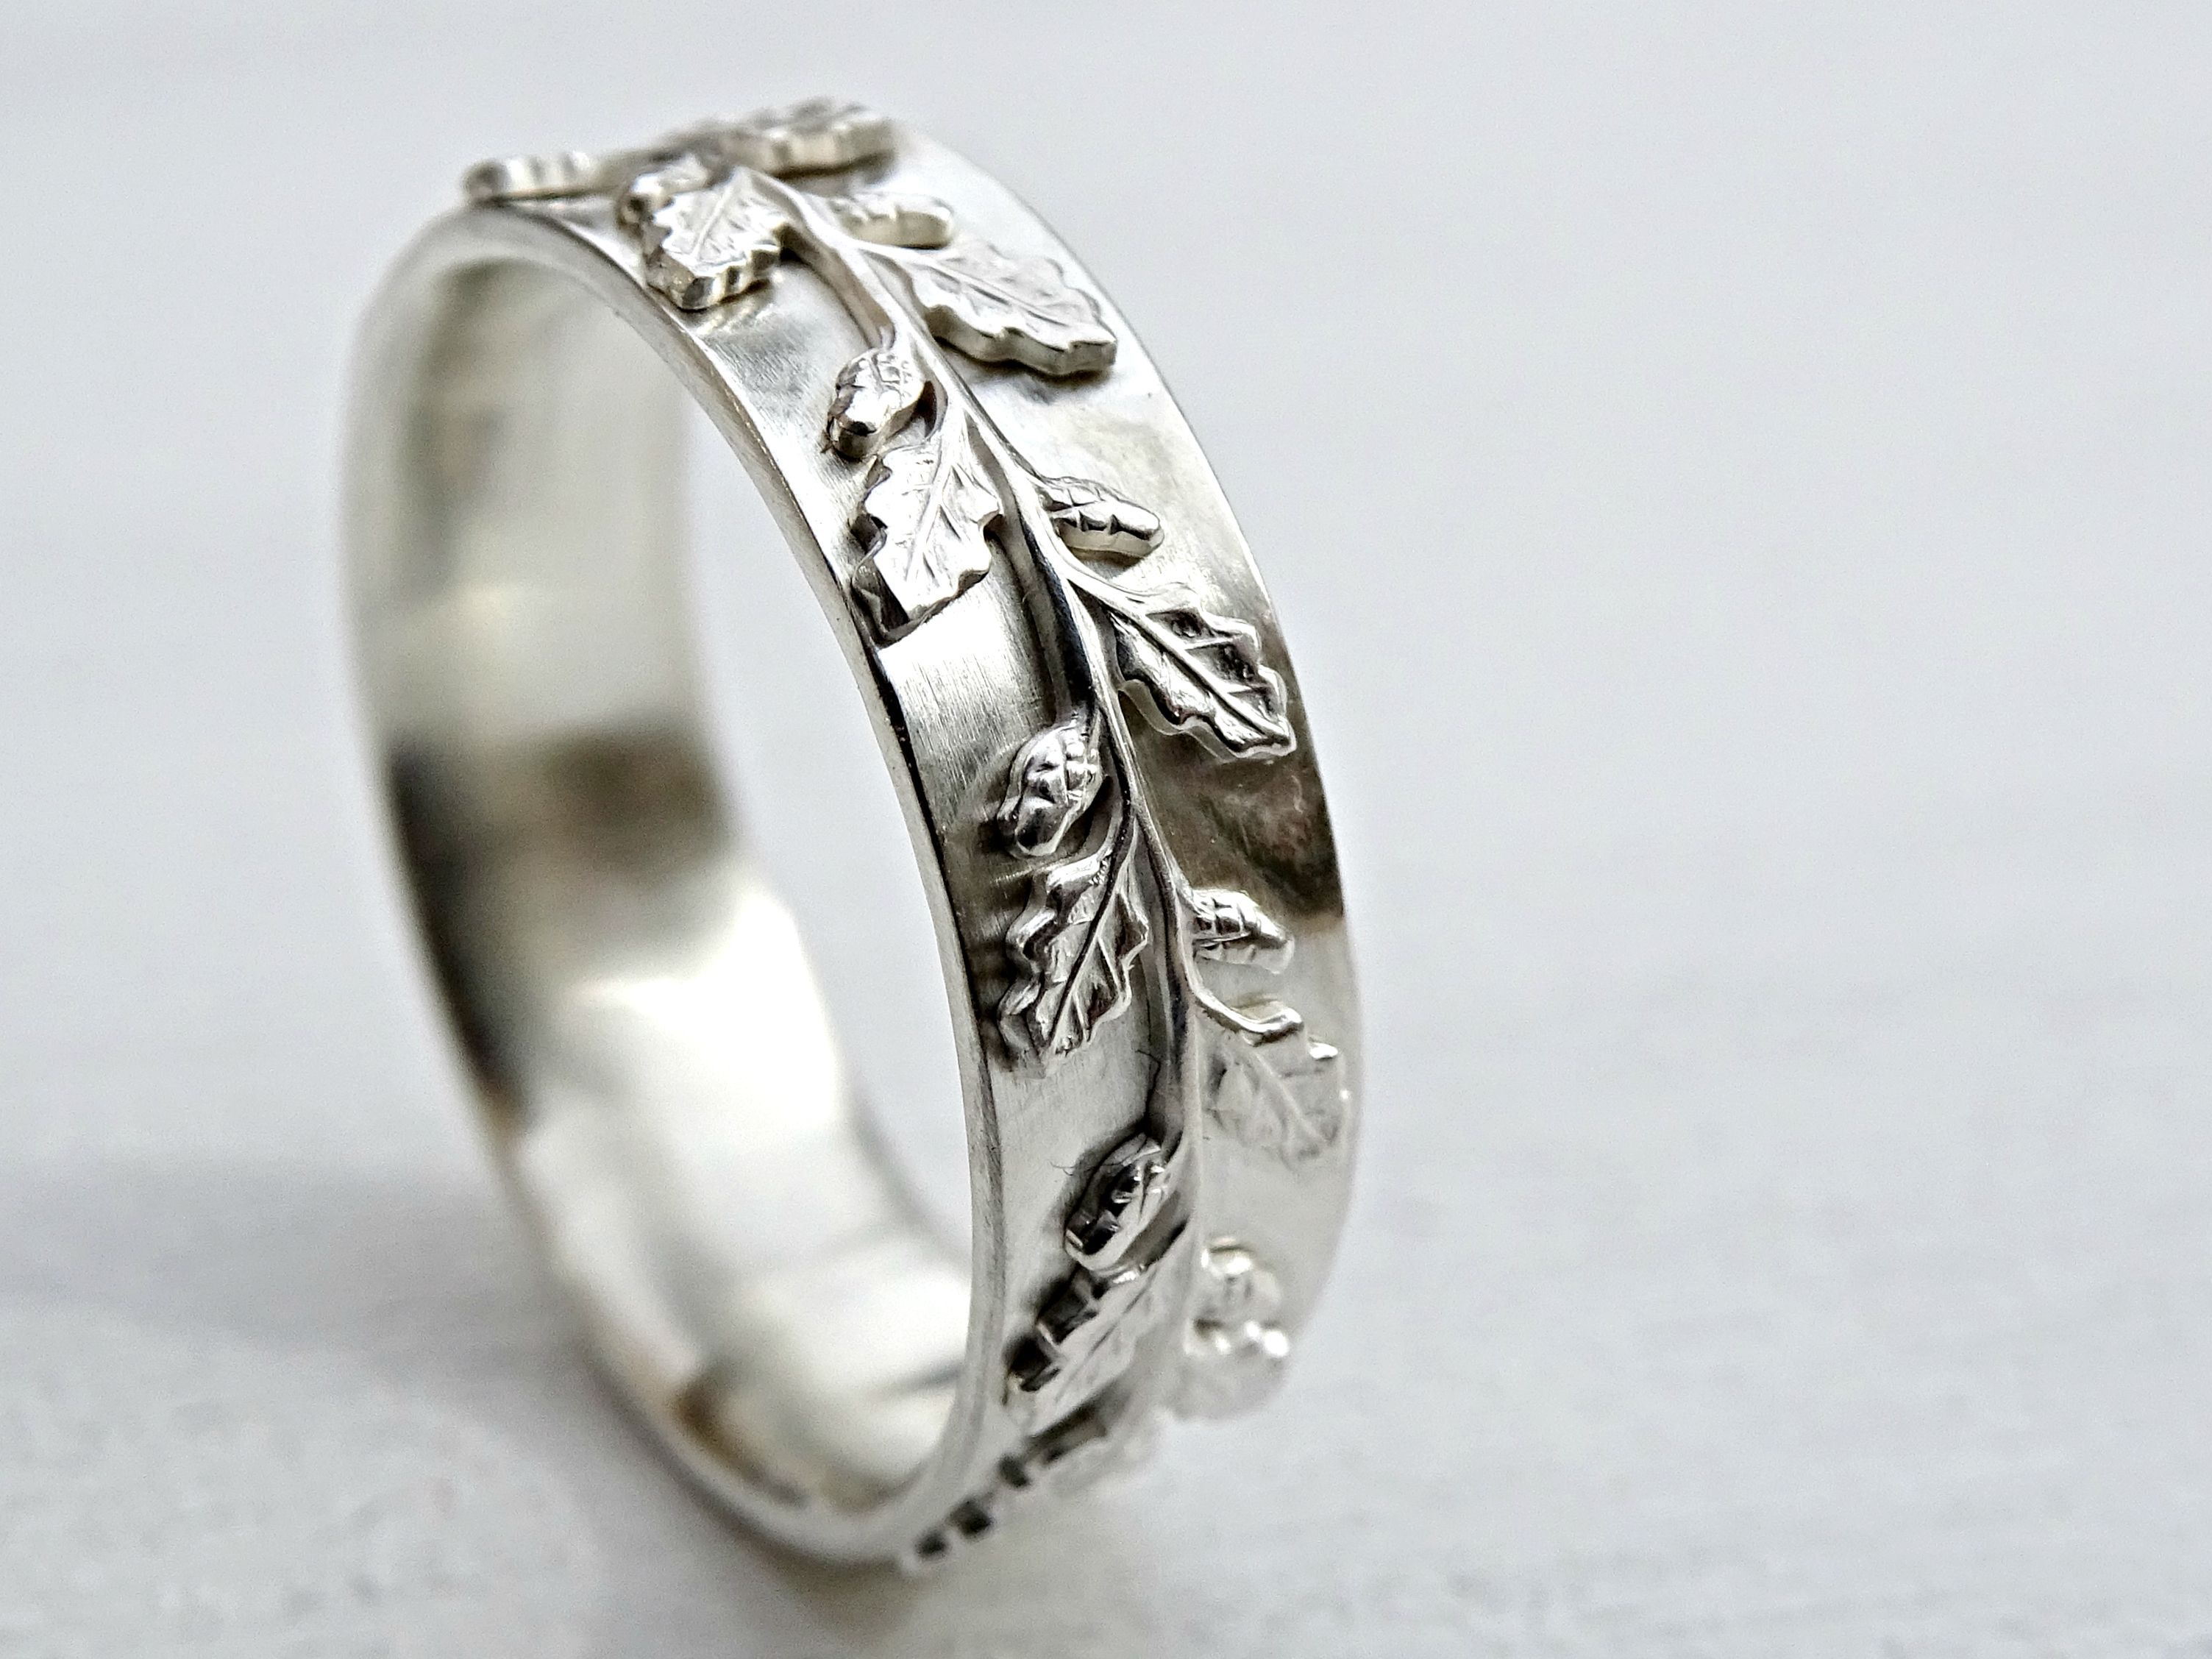 rings jewelers wedding medieval image collection eternal waves fresh engagement bostonian stock